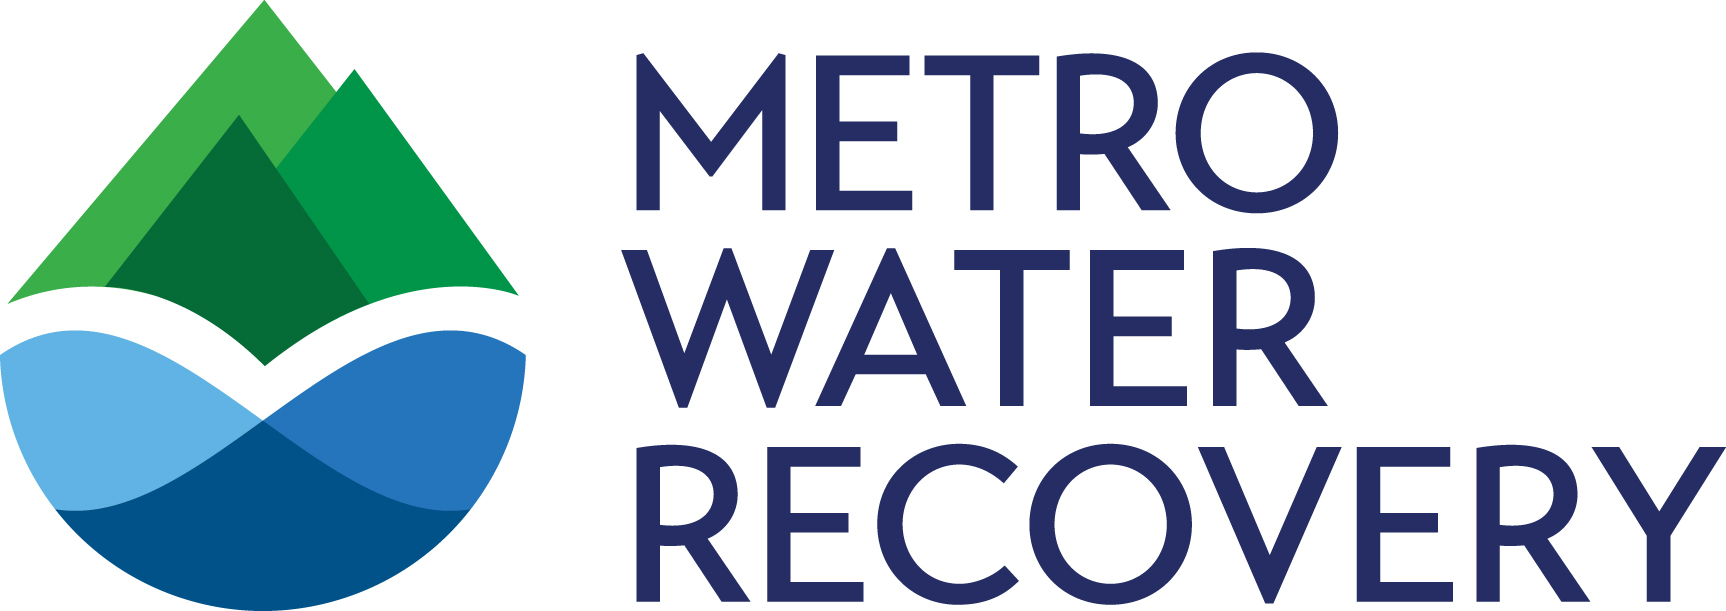 Organization logo of Metro Wastewater Reclamation District